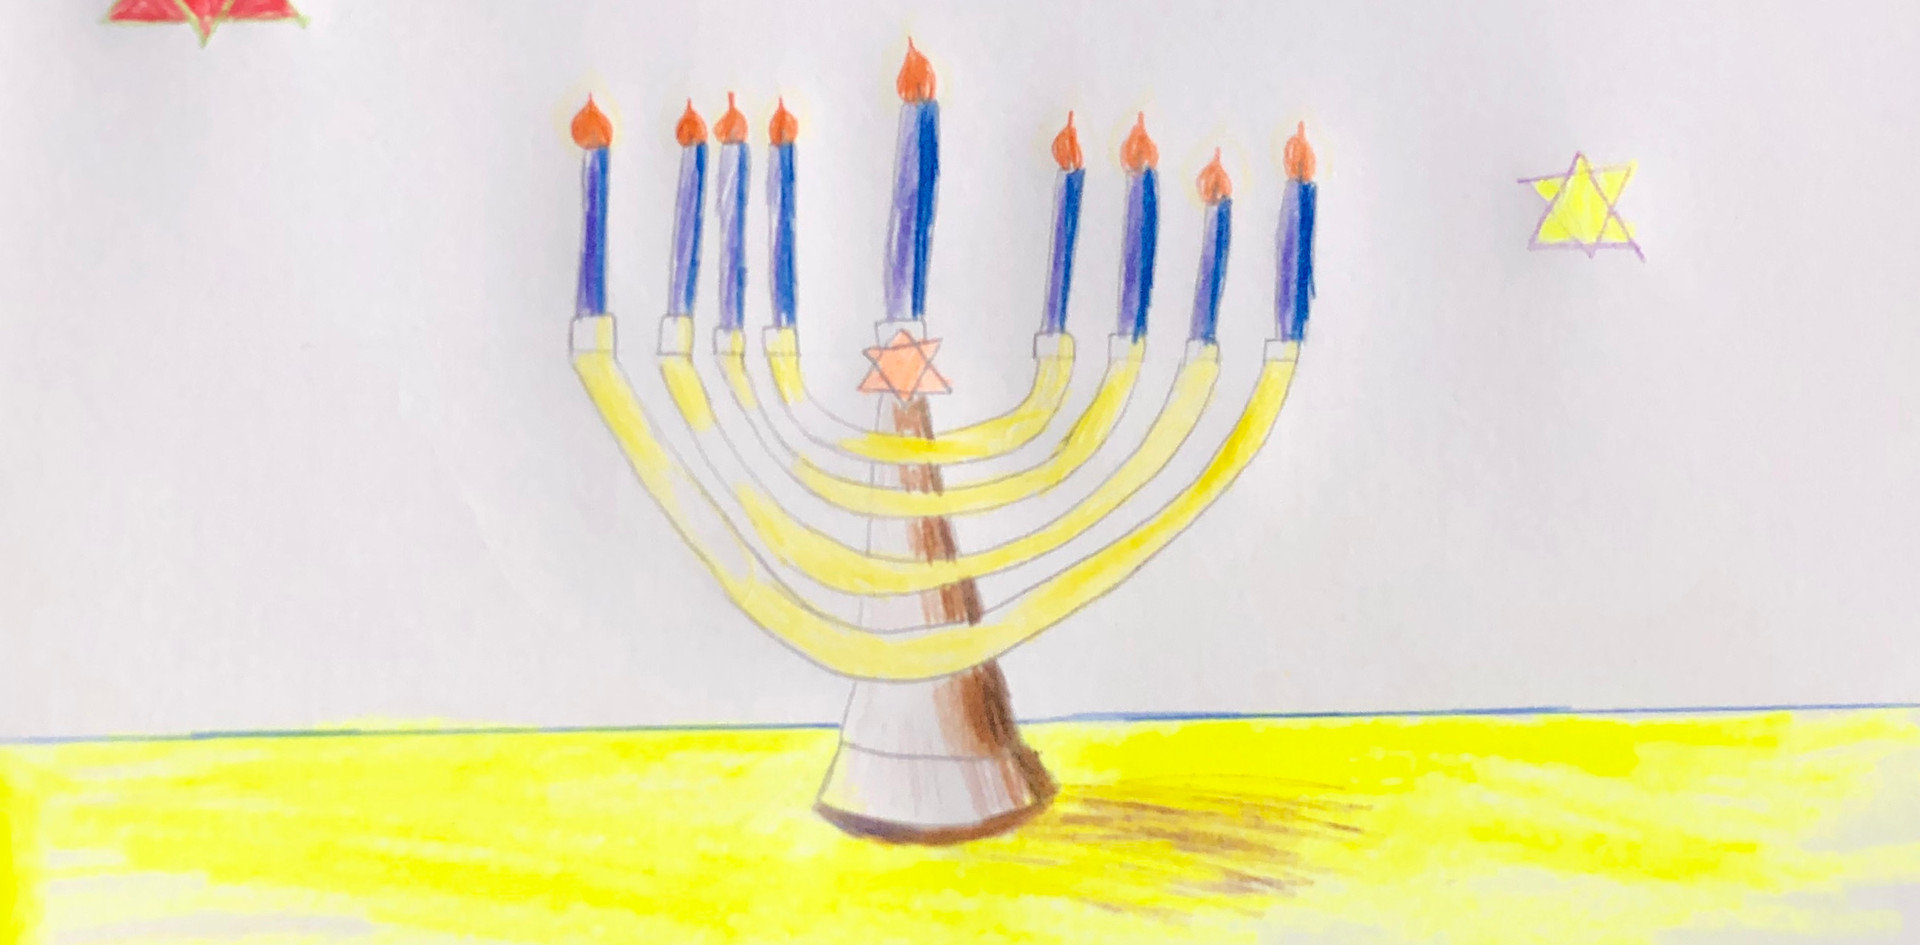 Menorah.jpeg